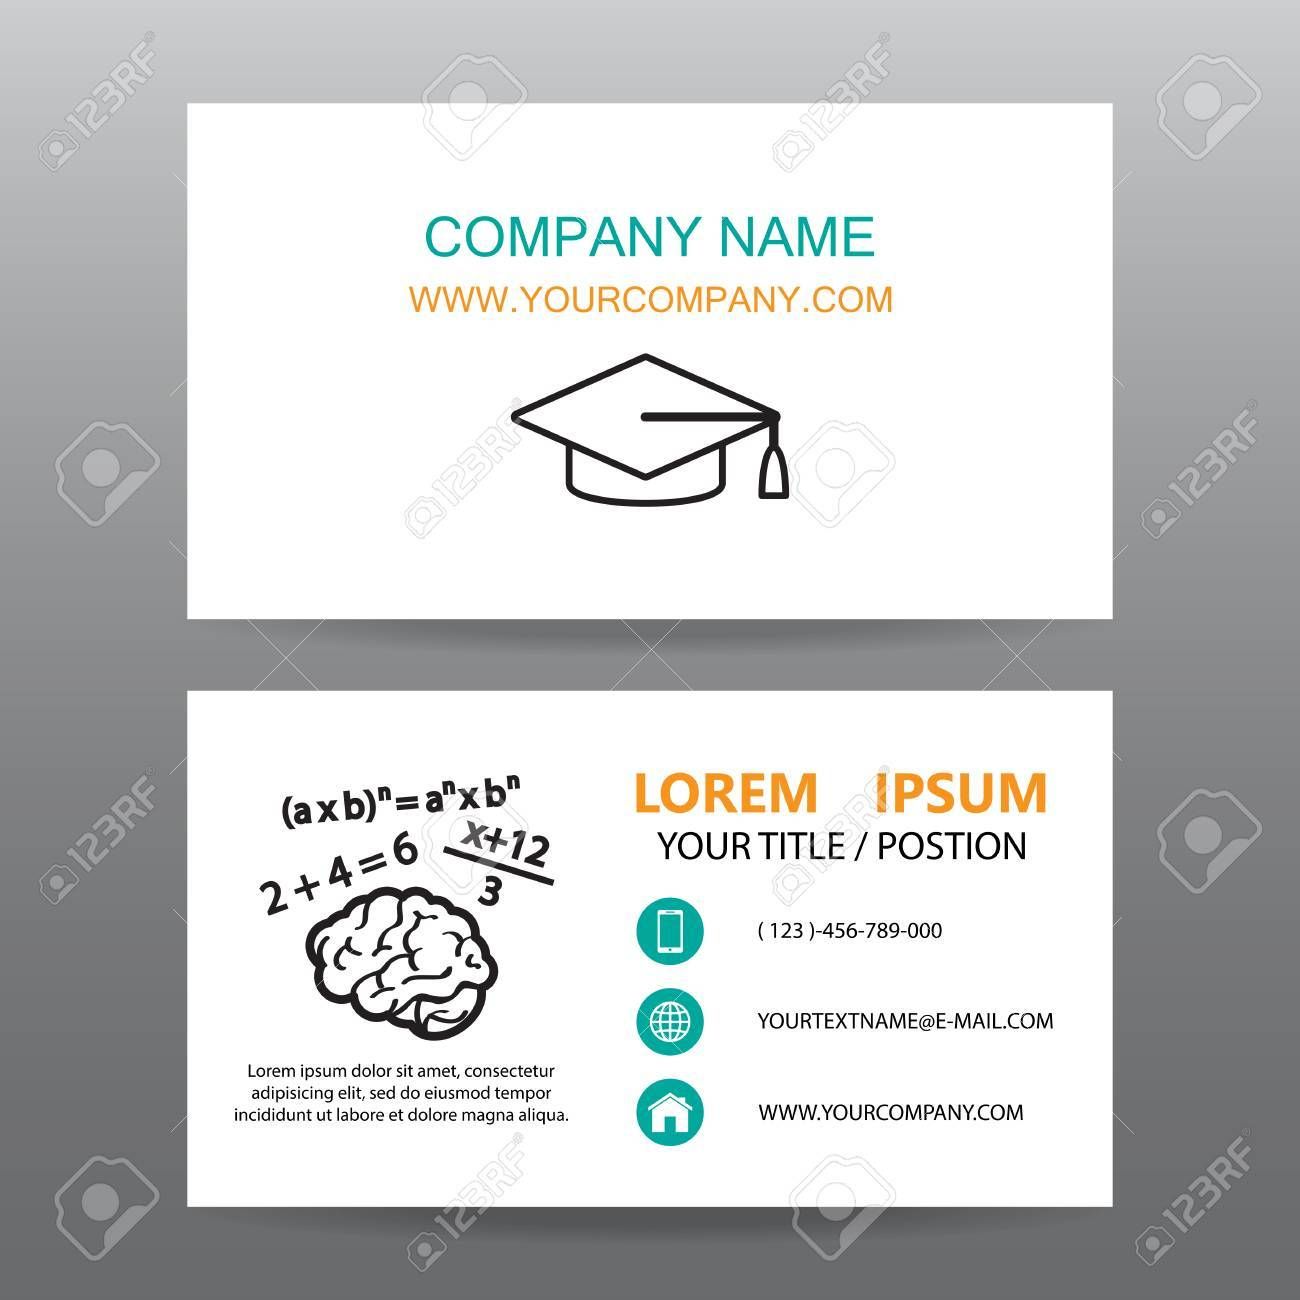 Business Card Vector Background,Professors Or Teachers Royalty Free ...